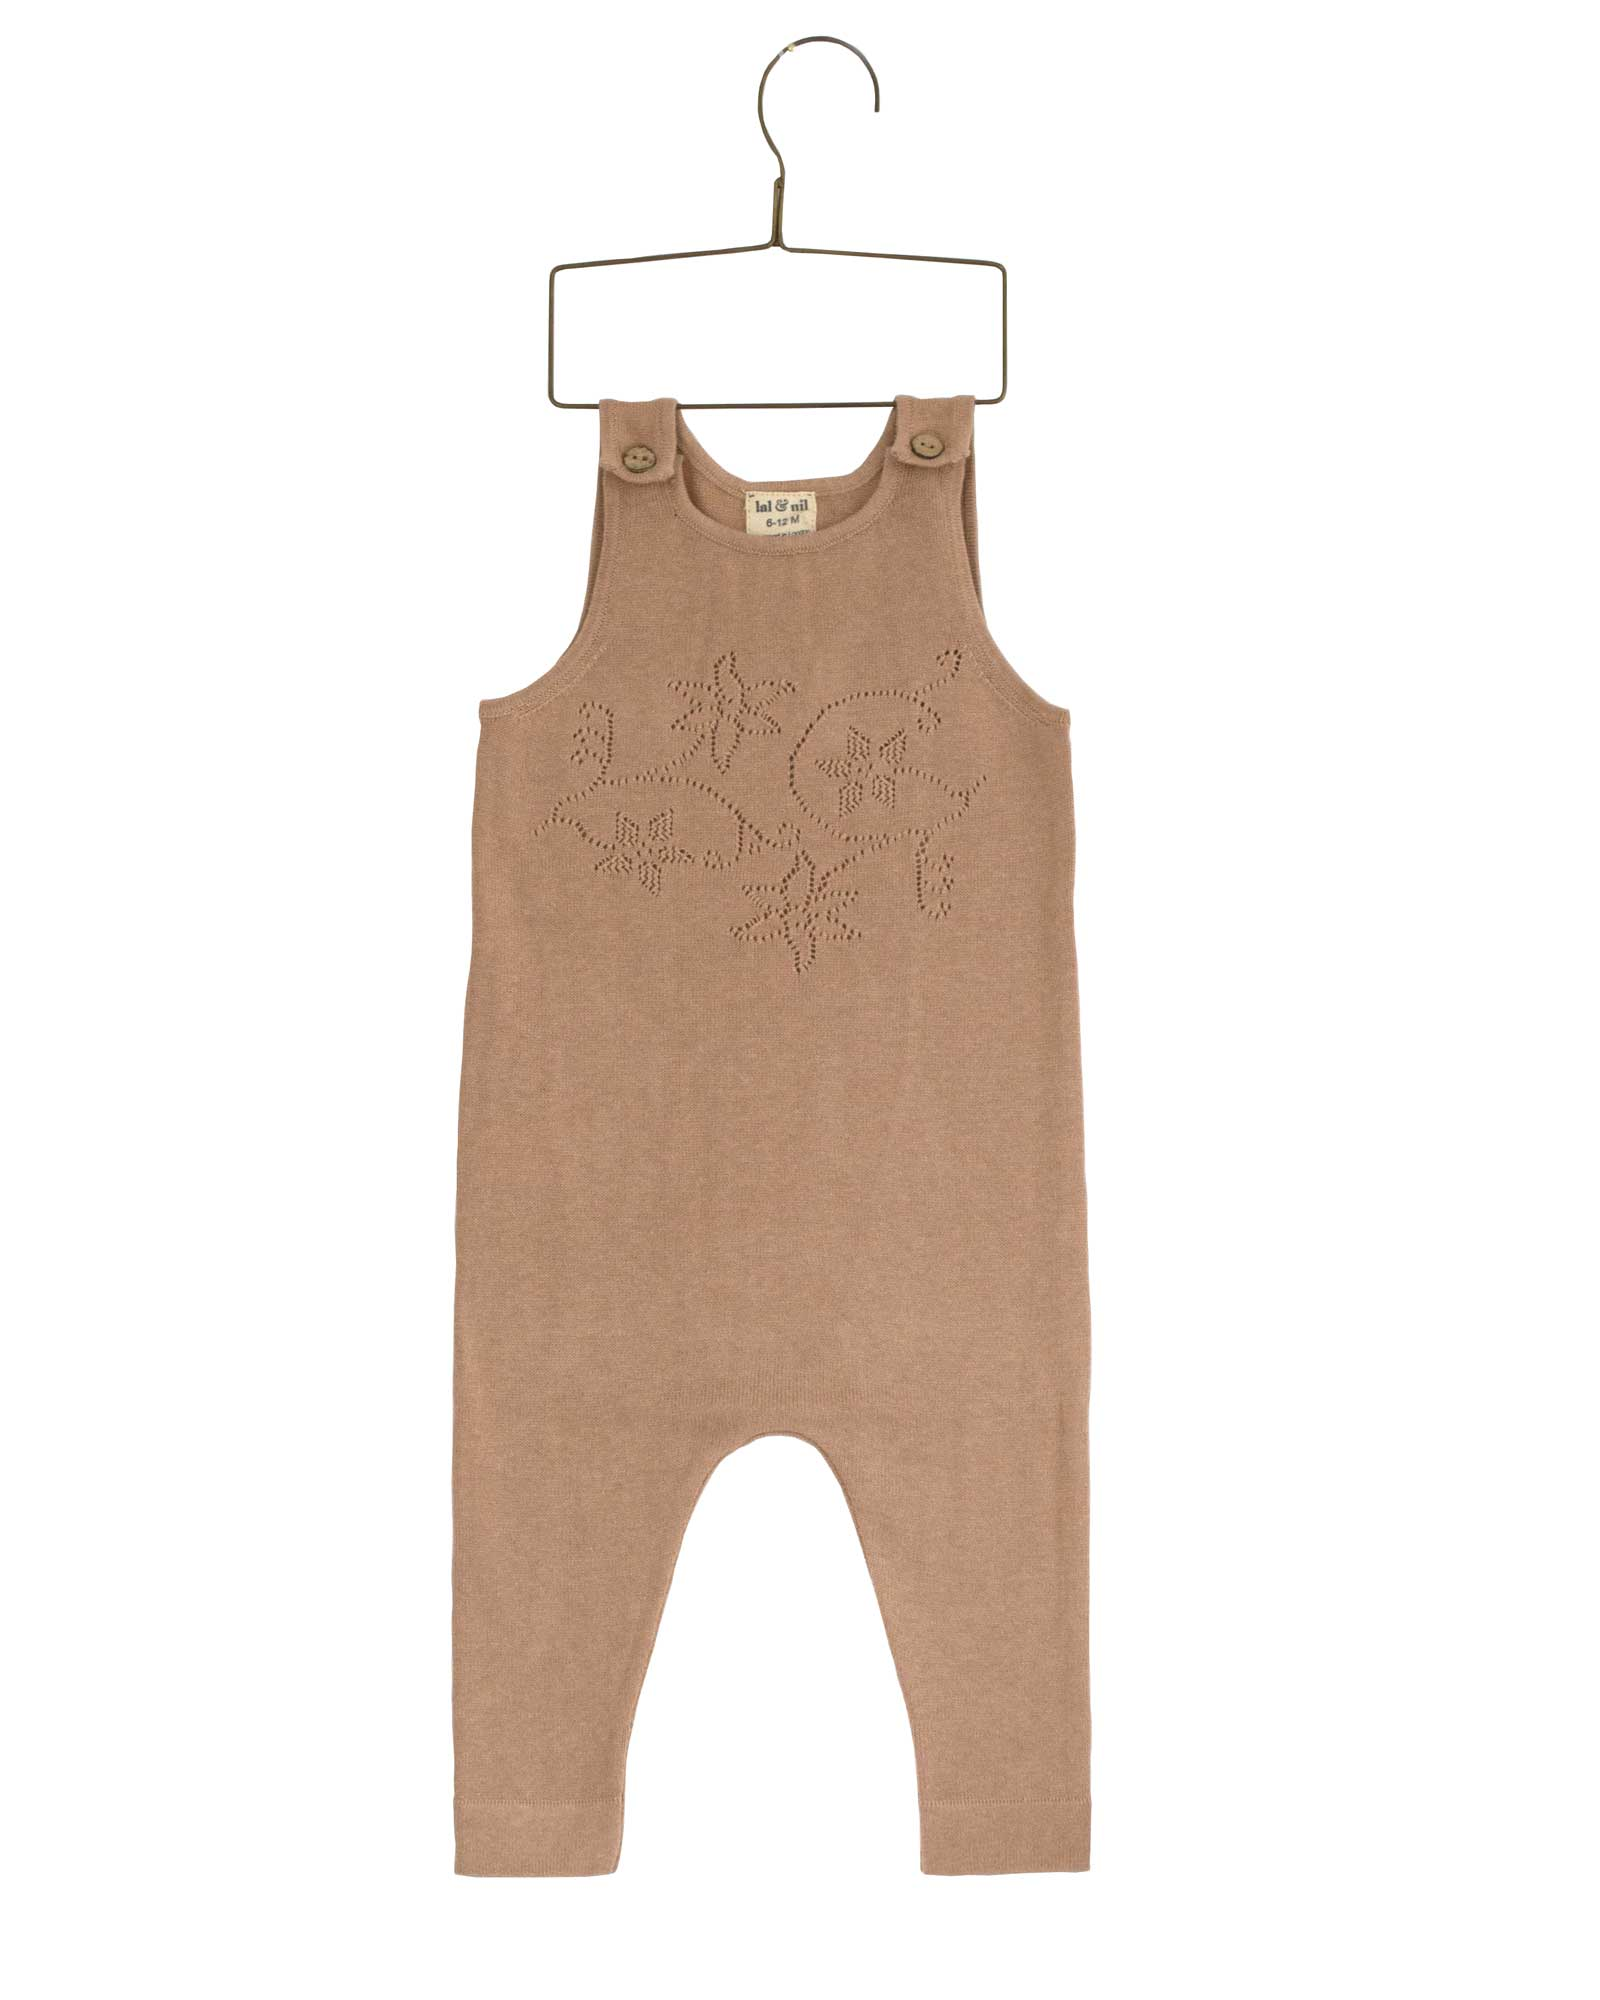 Lal & Nil Dungaree - Sunset (Dusty Pink)